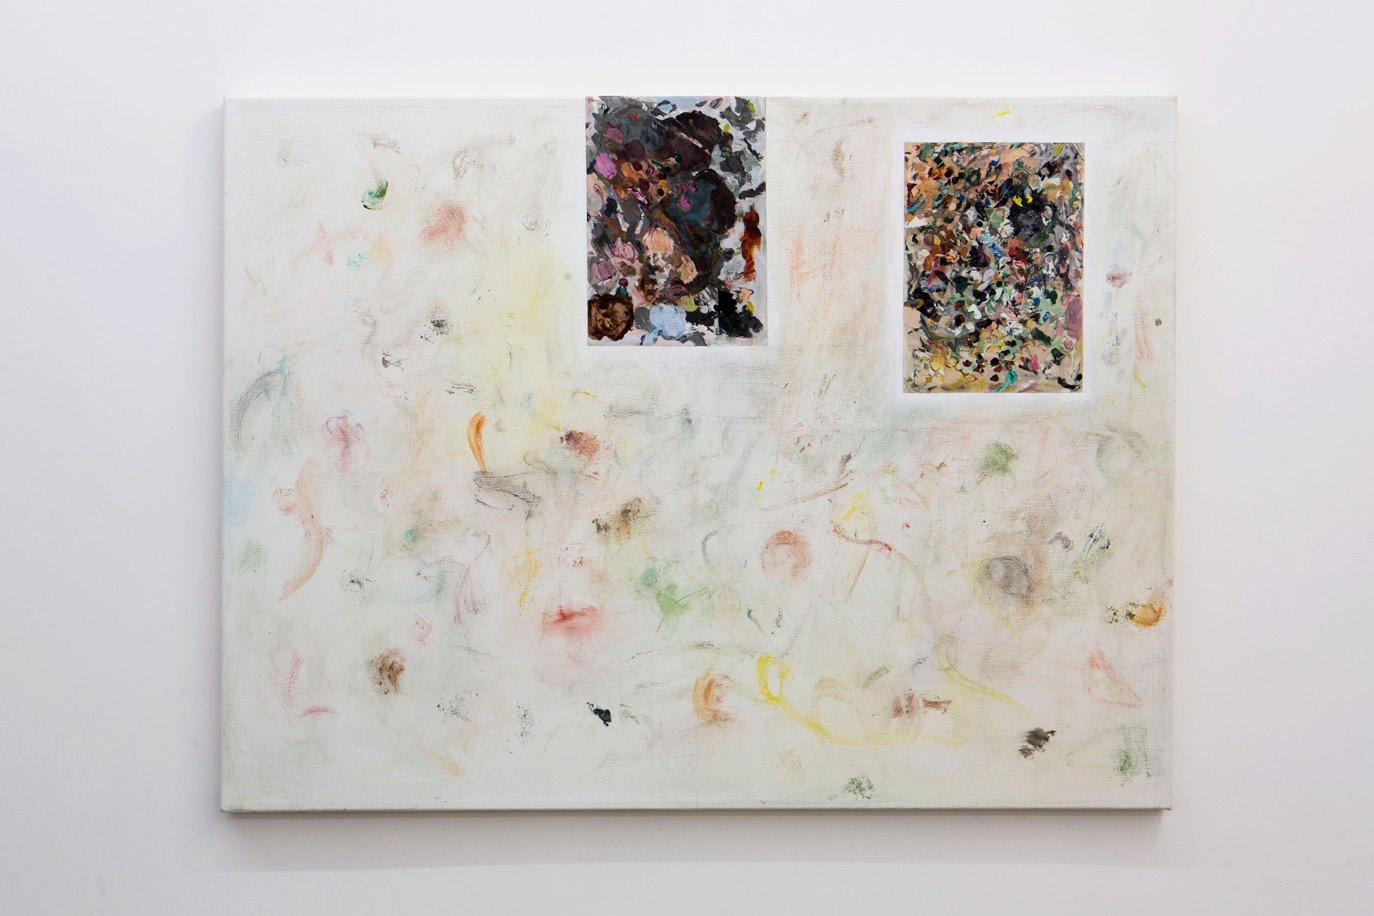 Stuart Brisley: Palettes from The Museum of Ordure 2020 Acrylic on gesso on canvas, 92 cm x 122 cm